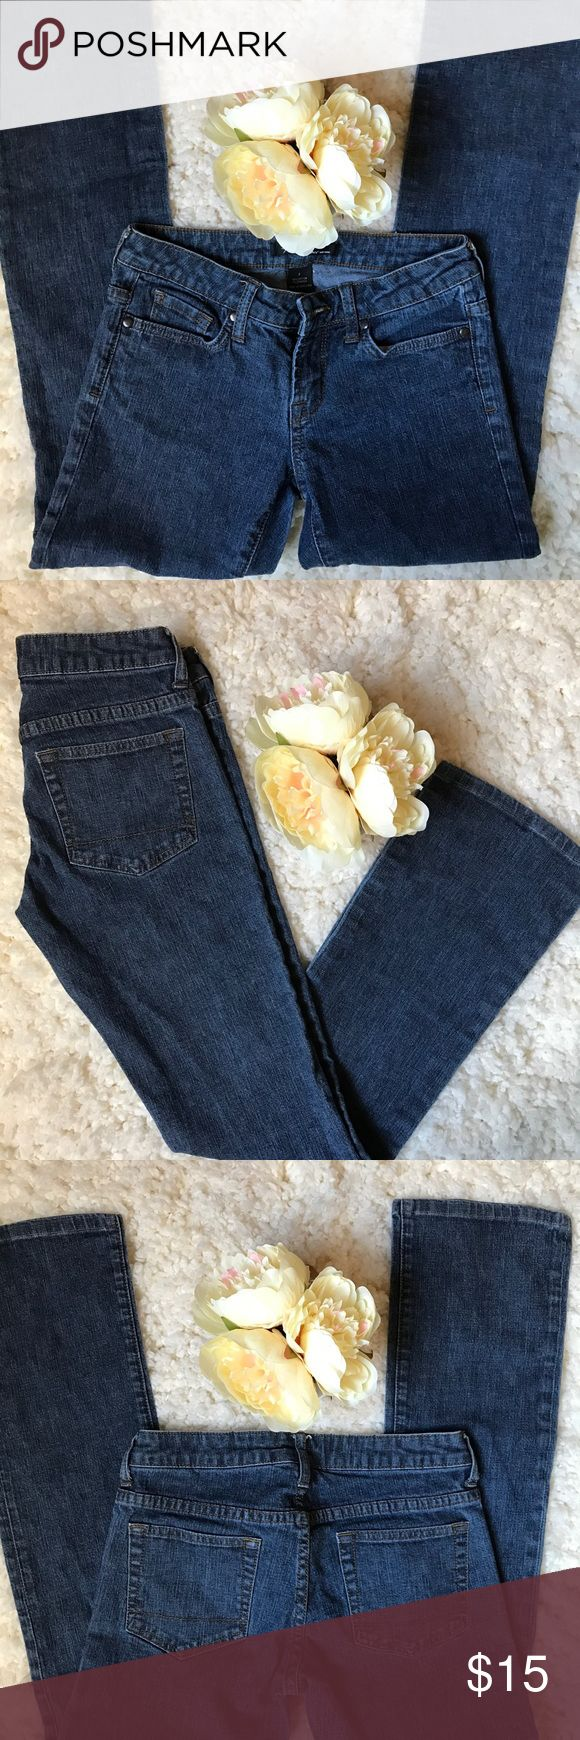 """Kenneth Cole Women's Dark Wash Jeans Size 2 Kenneth Cole Women's Dark Wash Jeans Size 2 Uniform Work Casual  *Inseam 27"""" Kenneth Cole Jeans Straight Leg"""